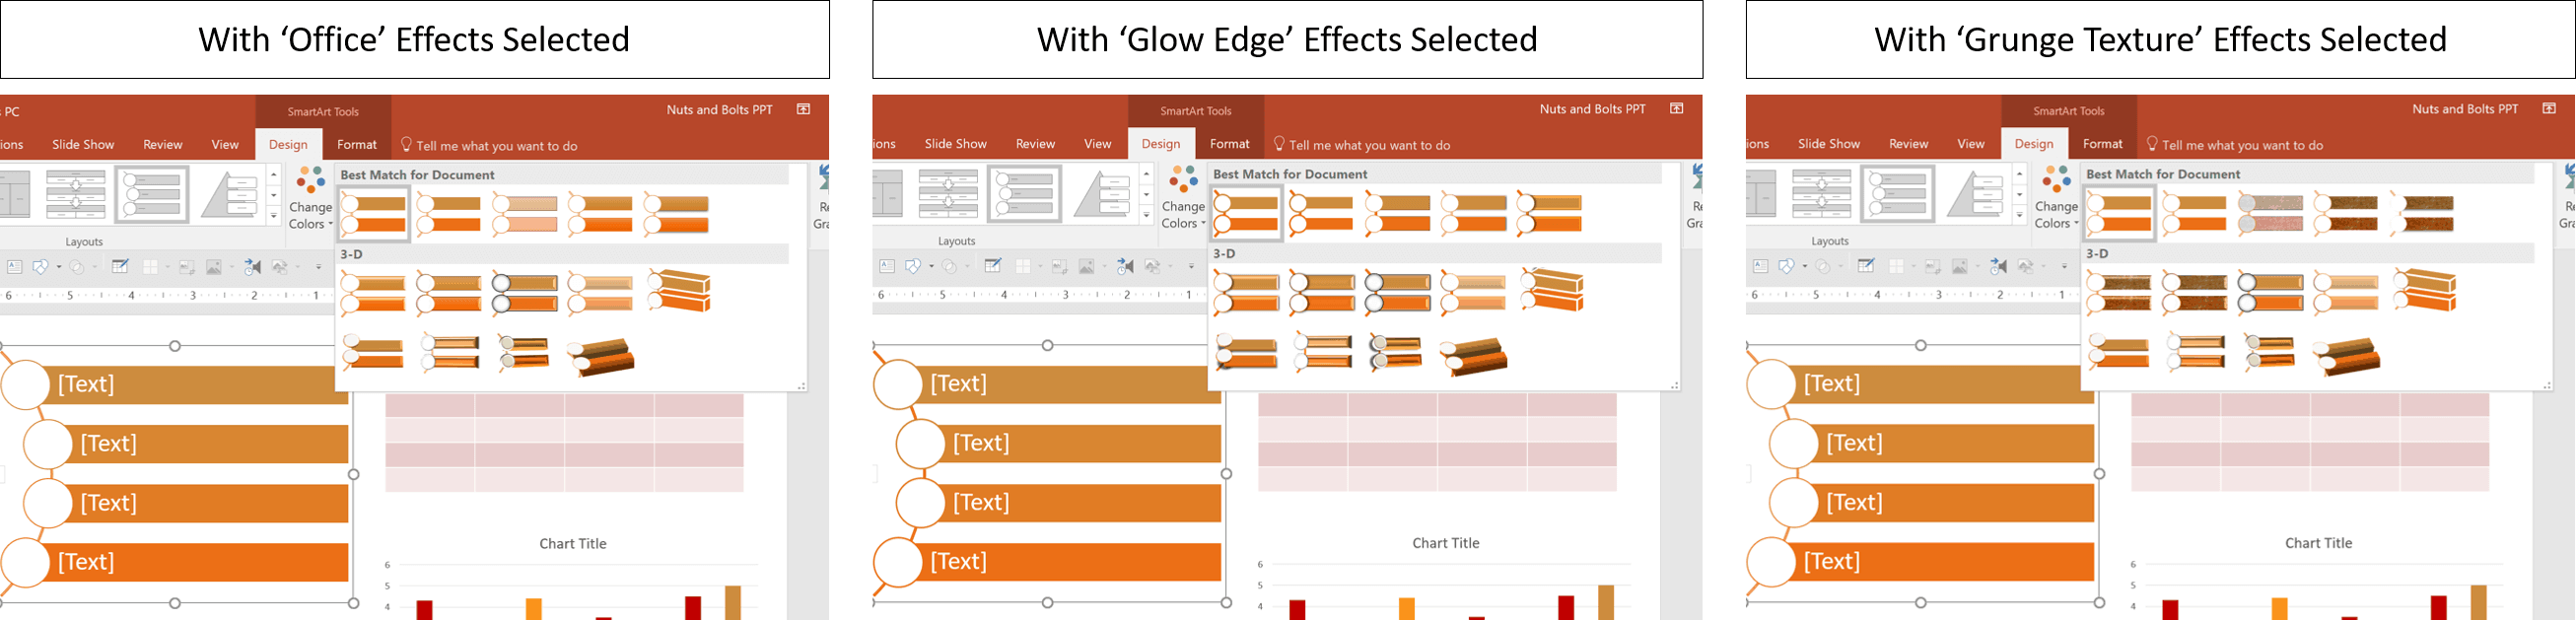 Comparison of object formatting between the Office Effects, Glow Edge effect and Grunge Texture effect as part of a PowerPoint theme